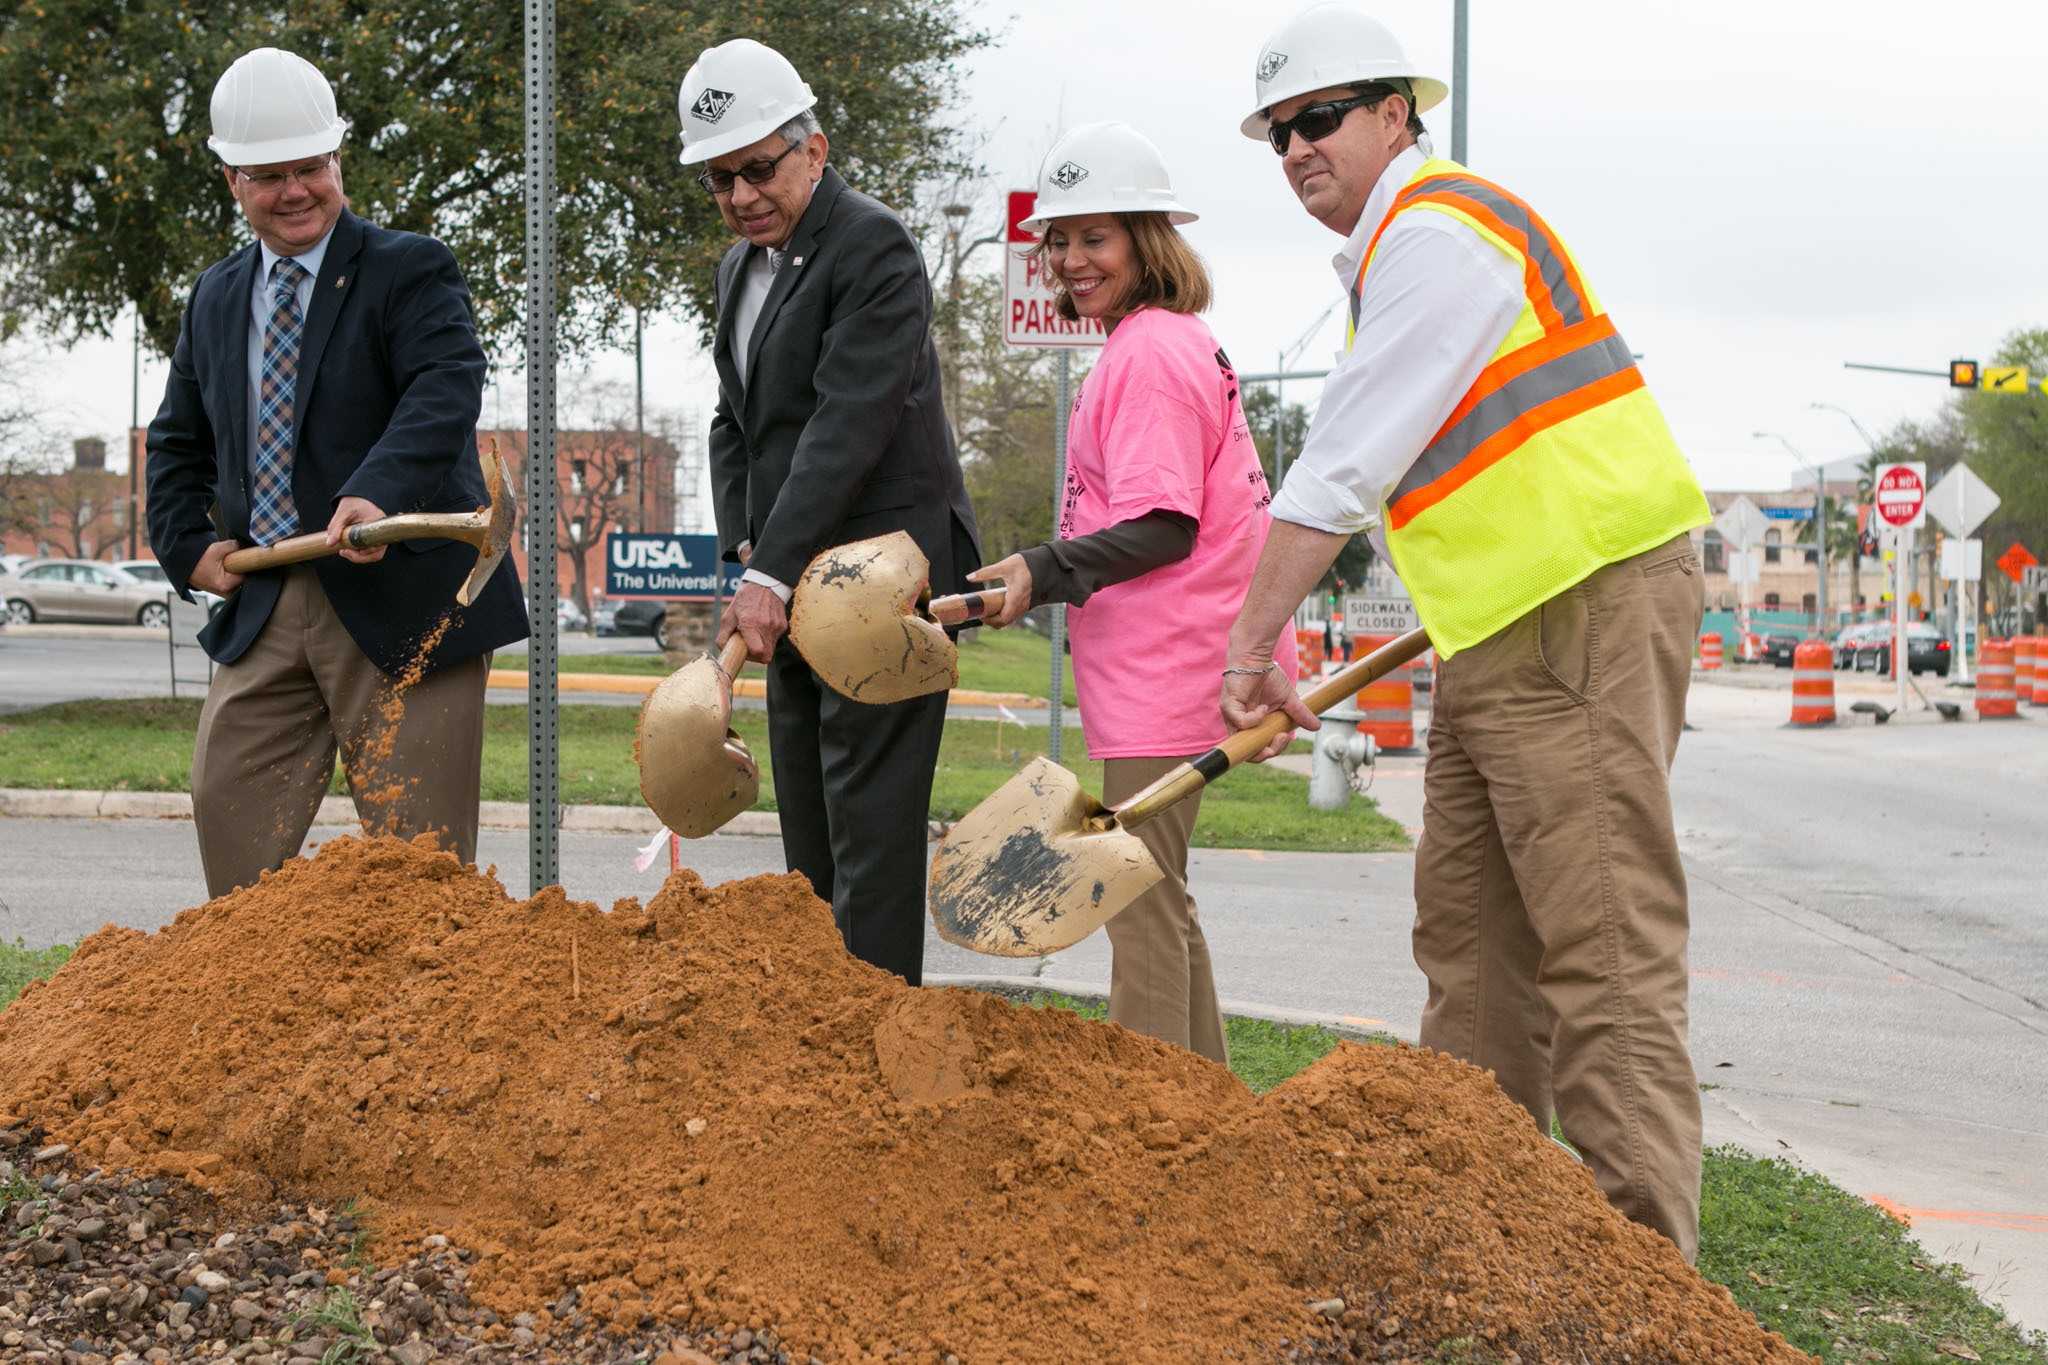 From left, Department of Transportation and Capital Improvements Capital Project Manager David McBeth, UTSA's Vice President for Community Services Jude Valdez, City Councilwoman of District 5 Shirley Gonzales, and E-Z Bel Construction Project Manager Brandon Bishop break the ground on the 2012 bond project for Frio Street.